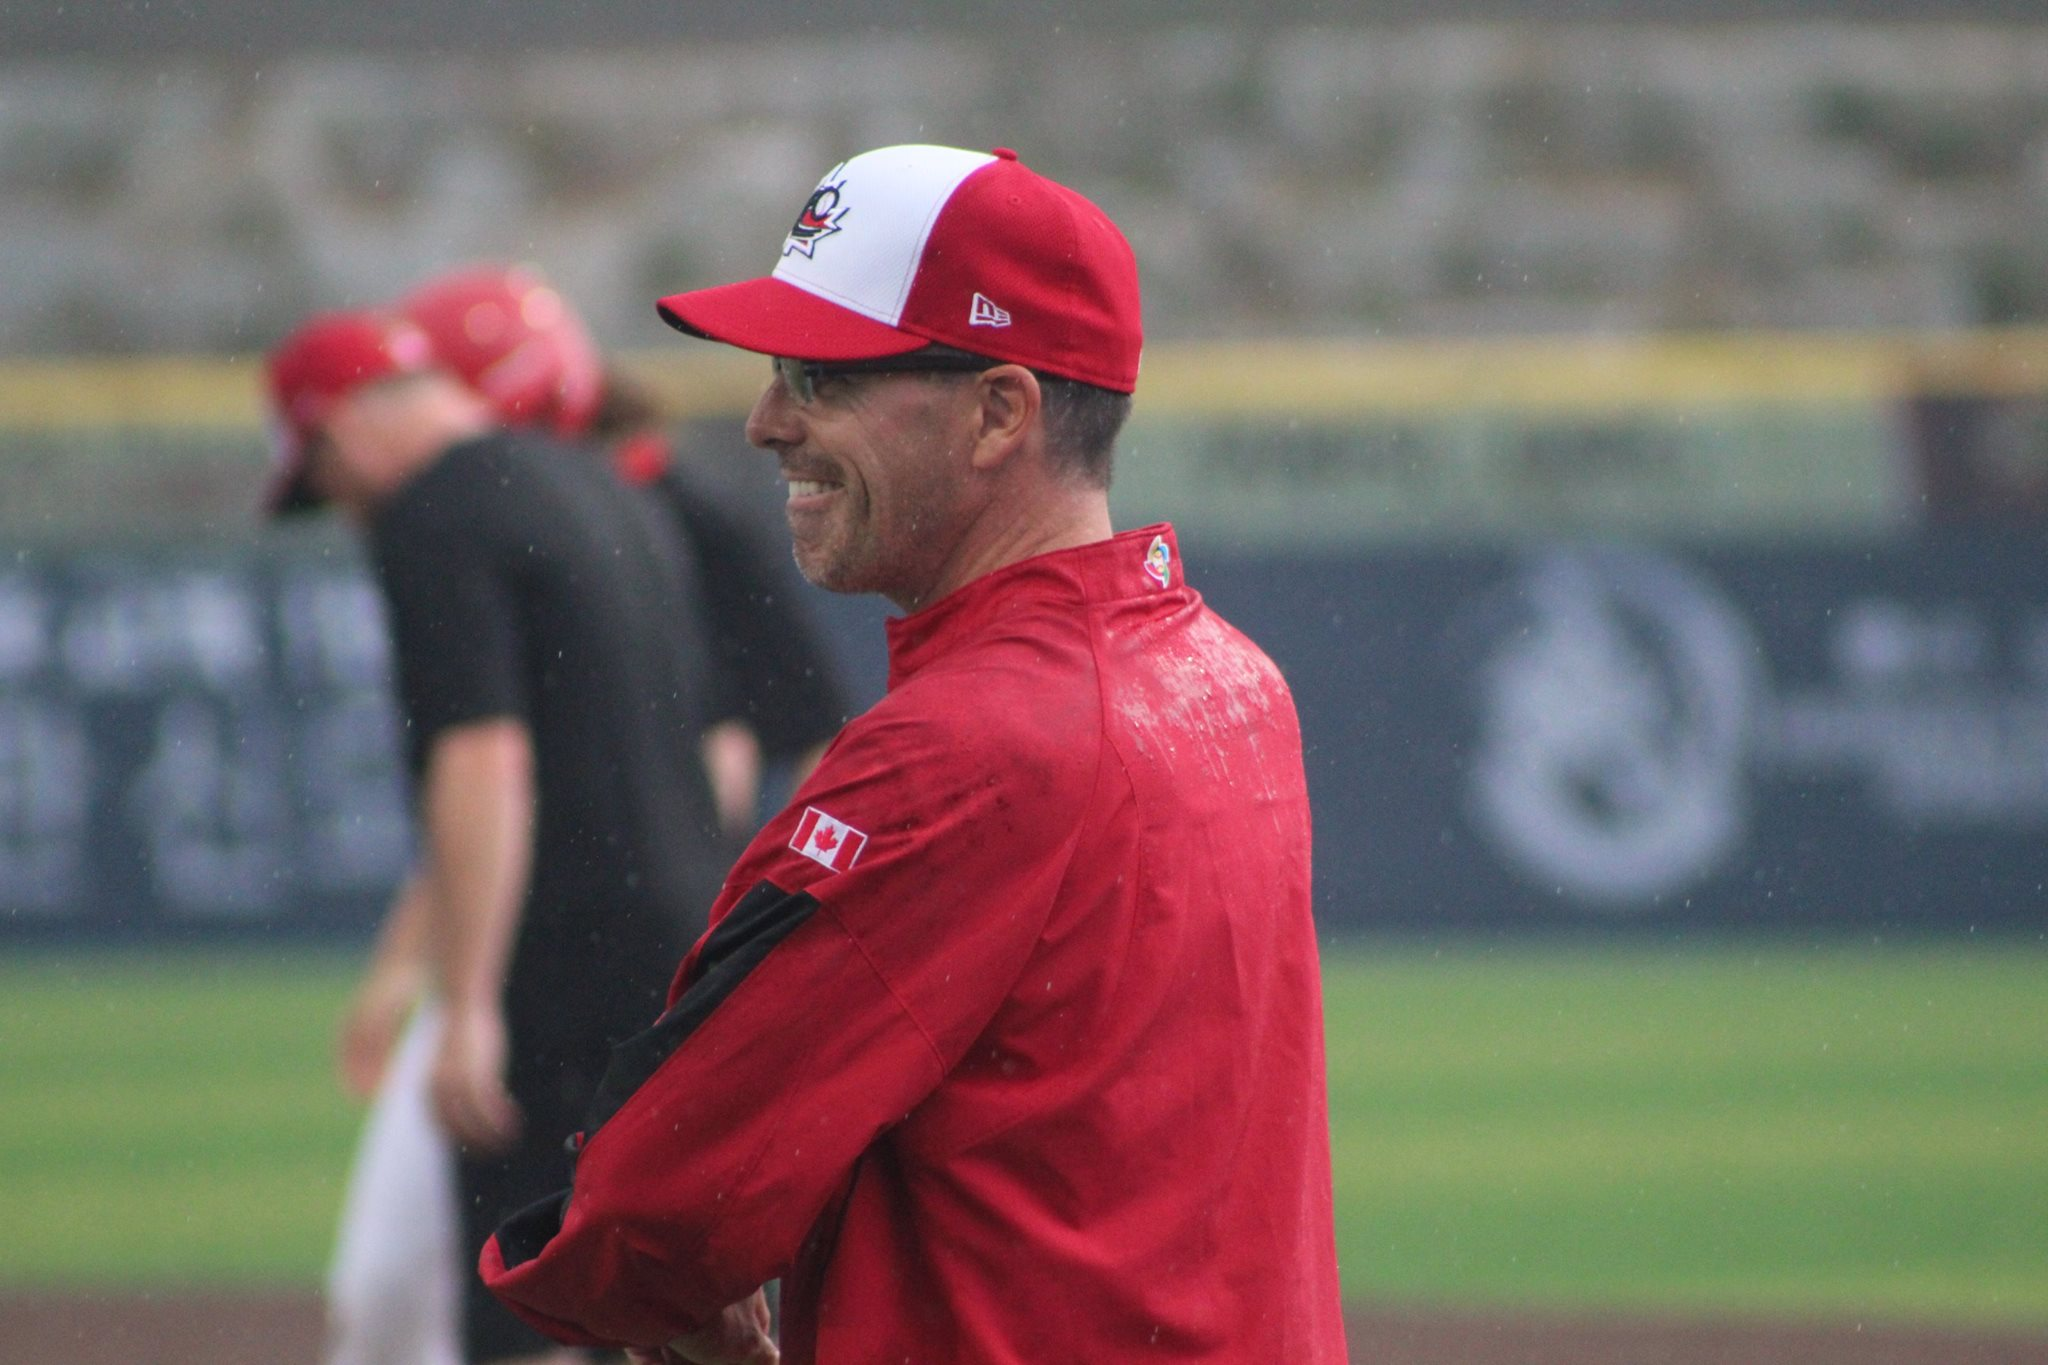 """Canadian national women's team general manager Andre Lachance recently shared his thoughts about """"corporate speak"""" in baseball with the Canadian Baseball Network. Photo: Baseball Canada"""